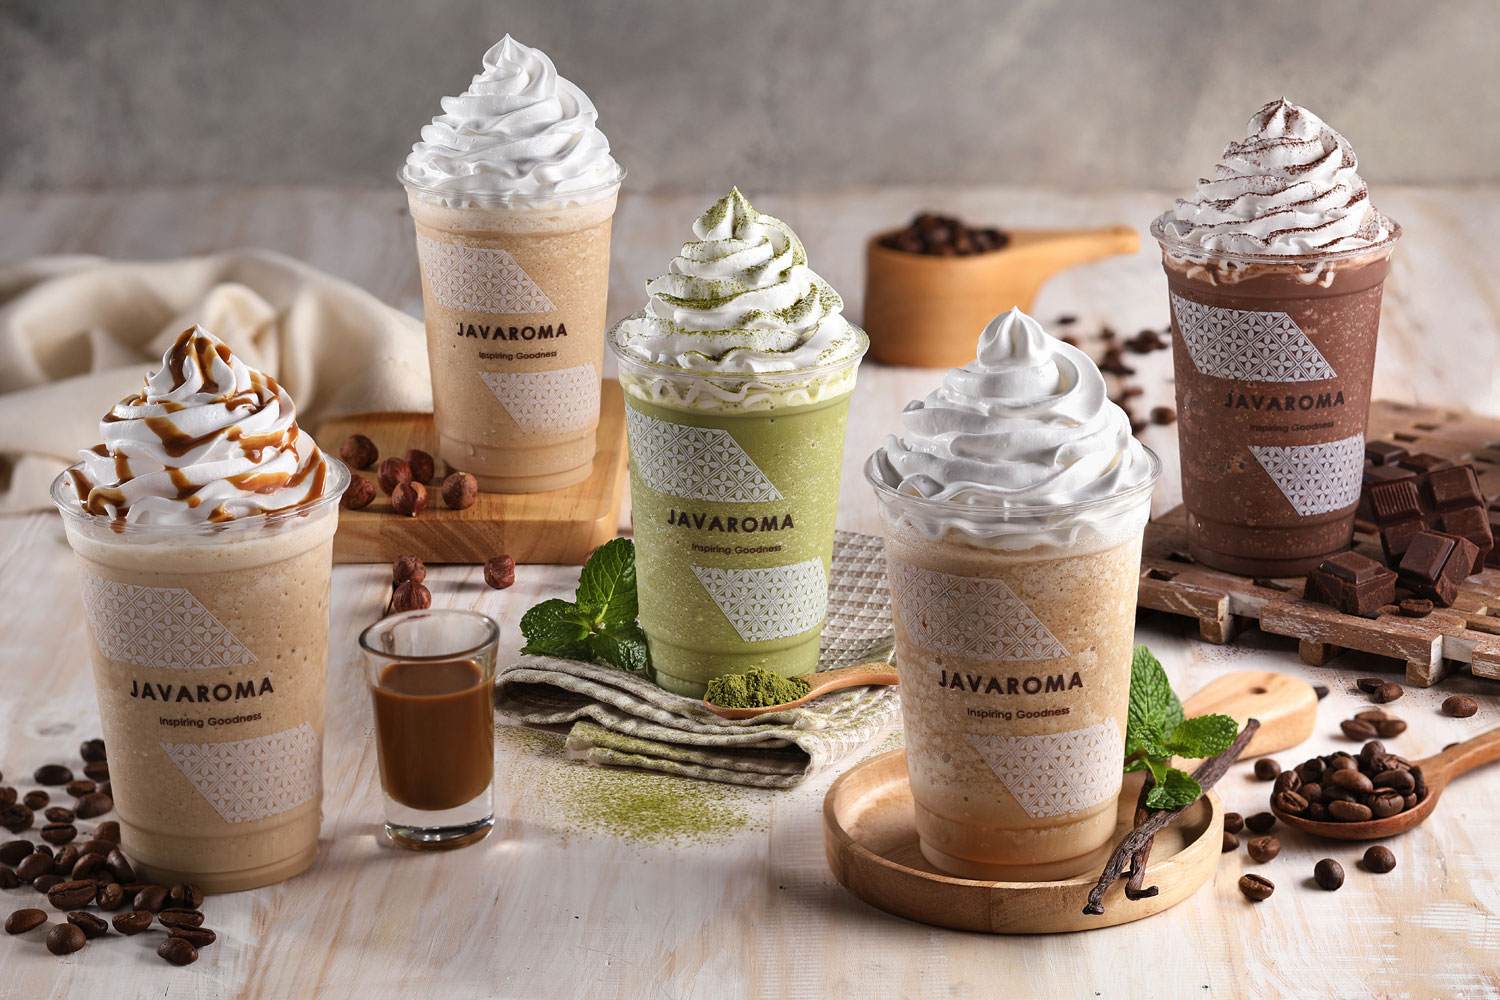 Just look at those mountain of happiness. And yes, the taste does as sweet as it looks, creamy and lots of fun. So, no matter how hard things were, have a frappe and be happy, folks!